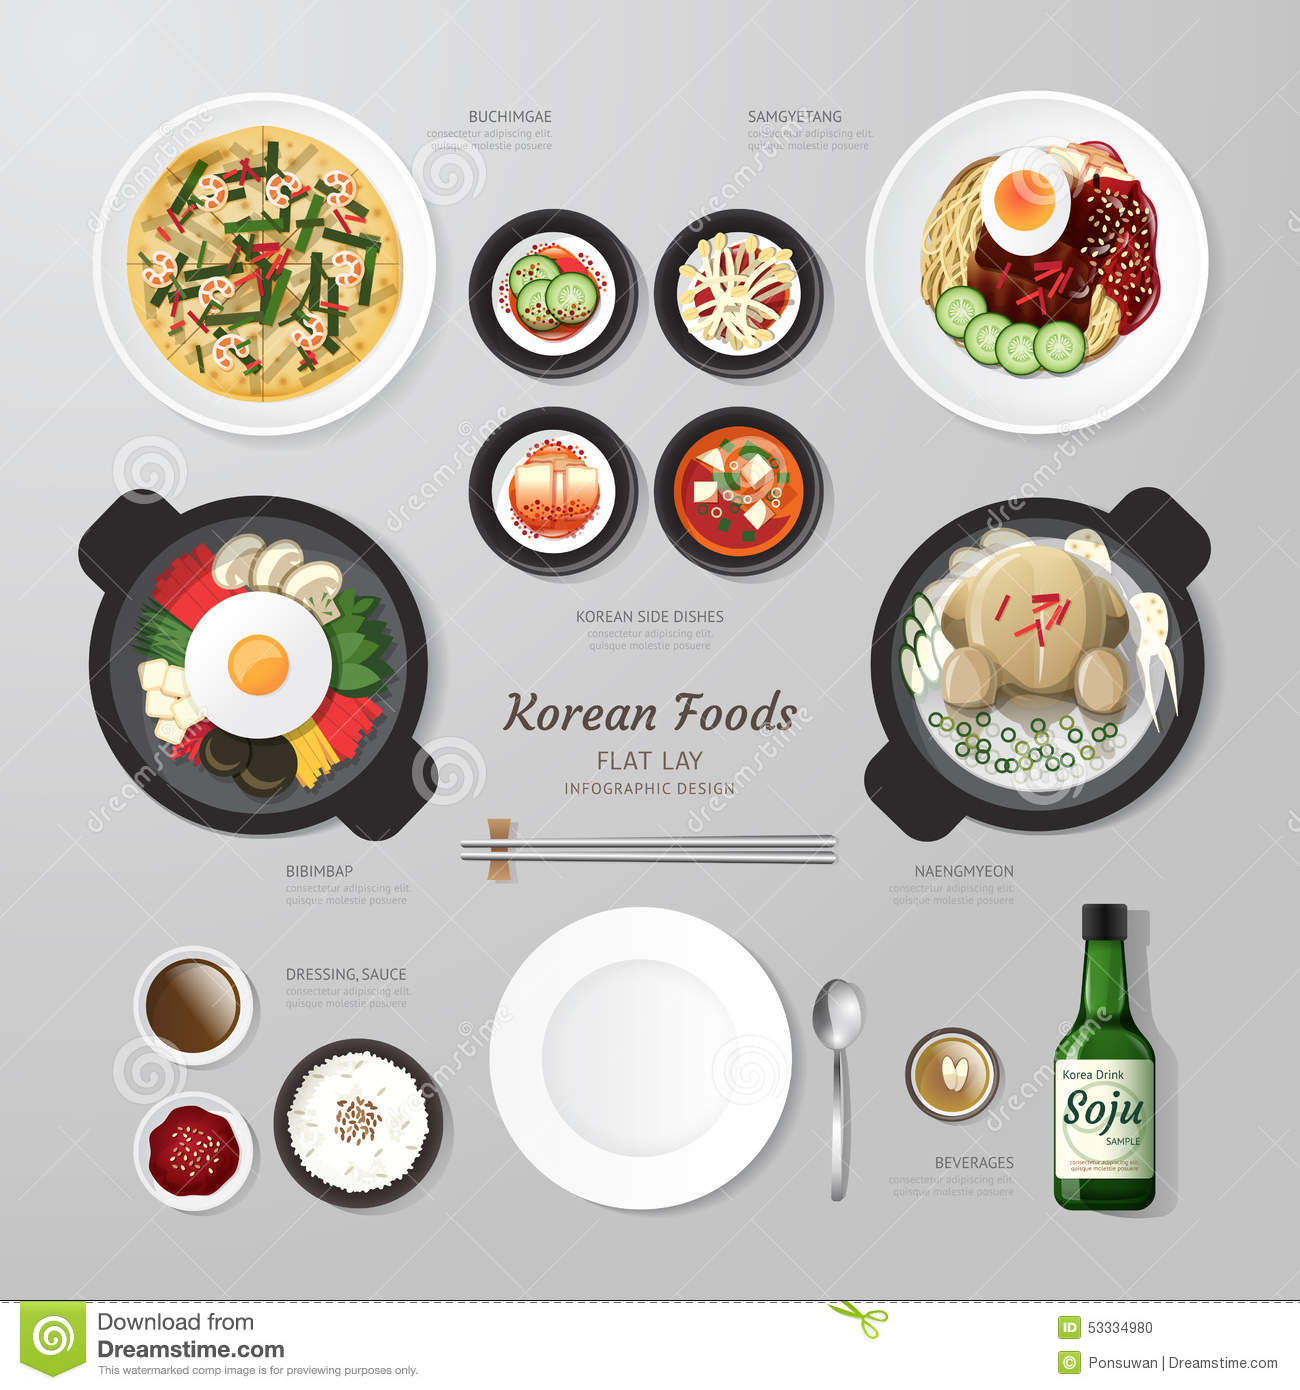 Infographic Korea Foods Business Flat Lay Idea Stock Vector